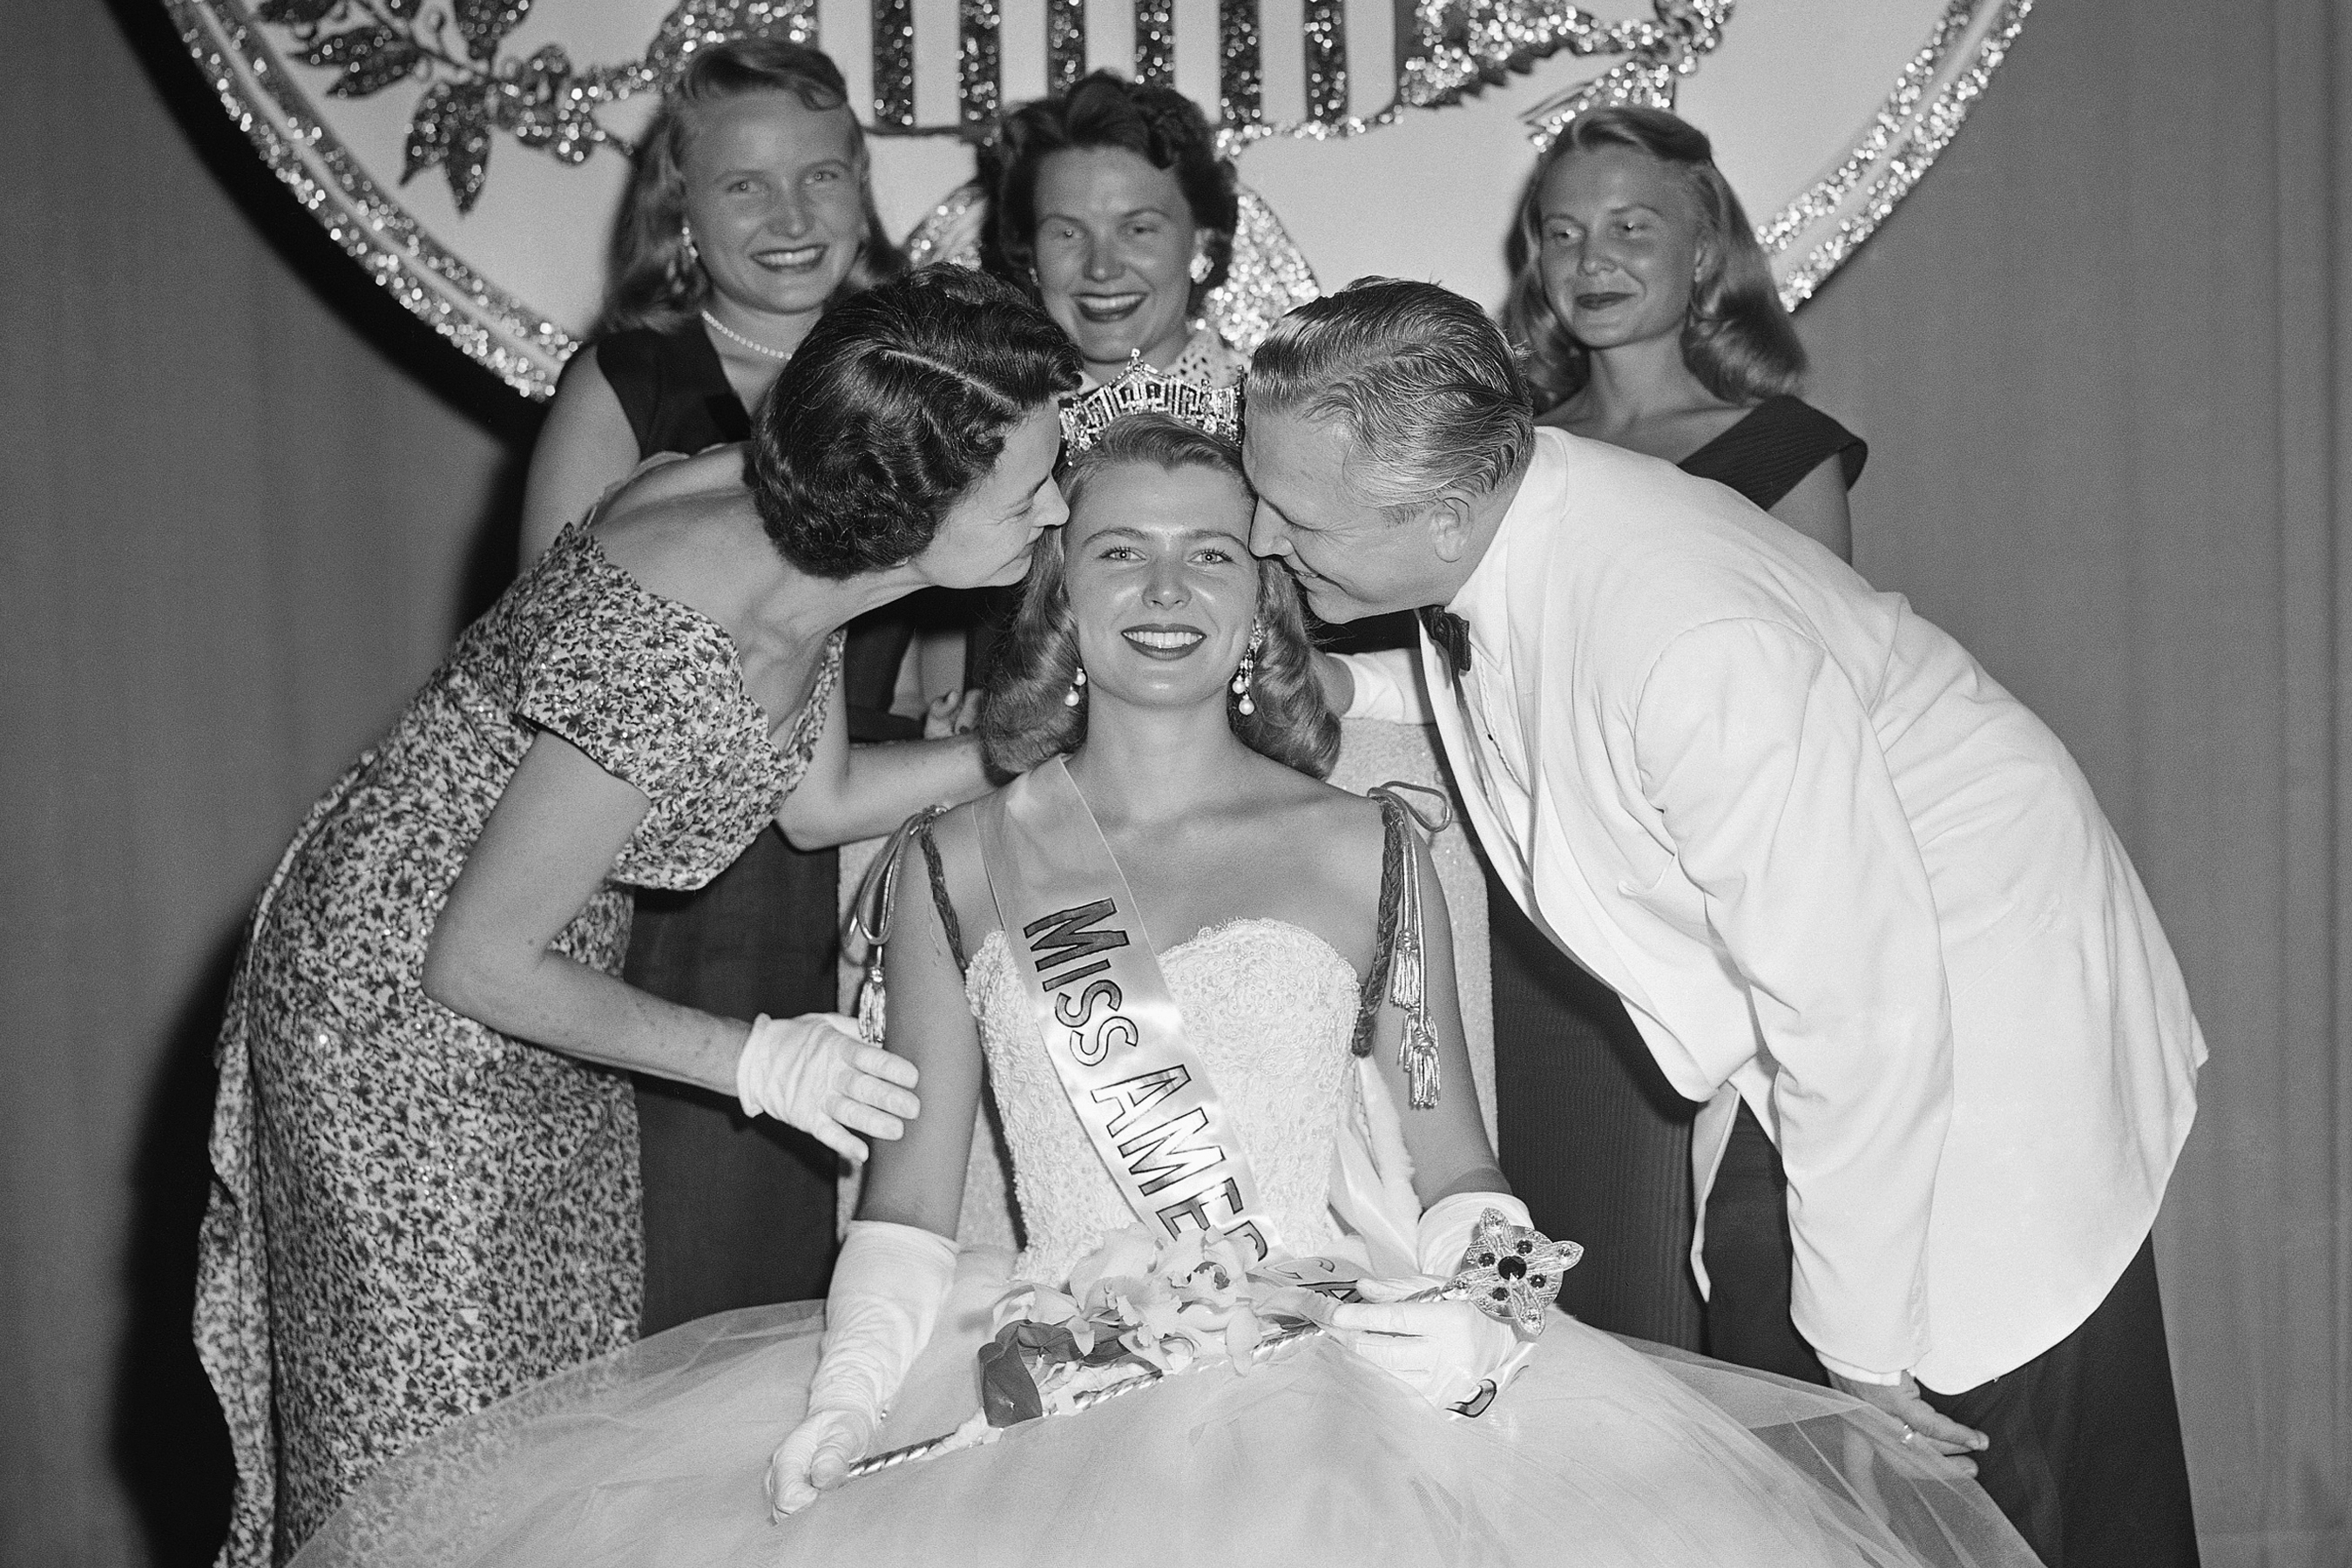 Marilyn Van Derbur, newly crowned Miss America of 1958, is shown with her family, Sept. 7, 1957, in Atlantic City, N.J.